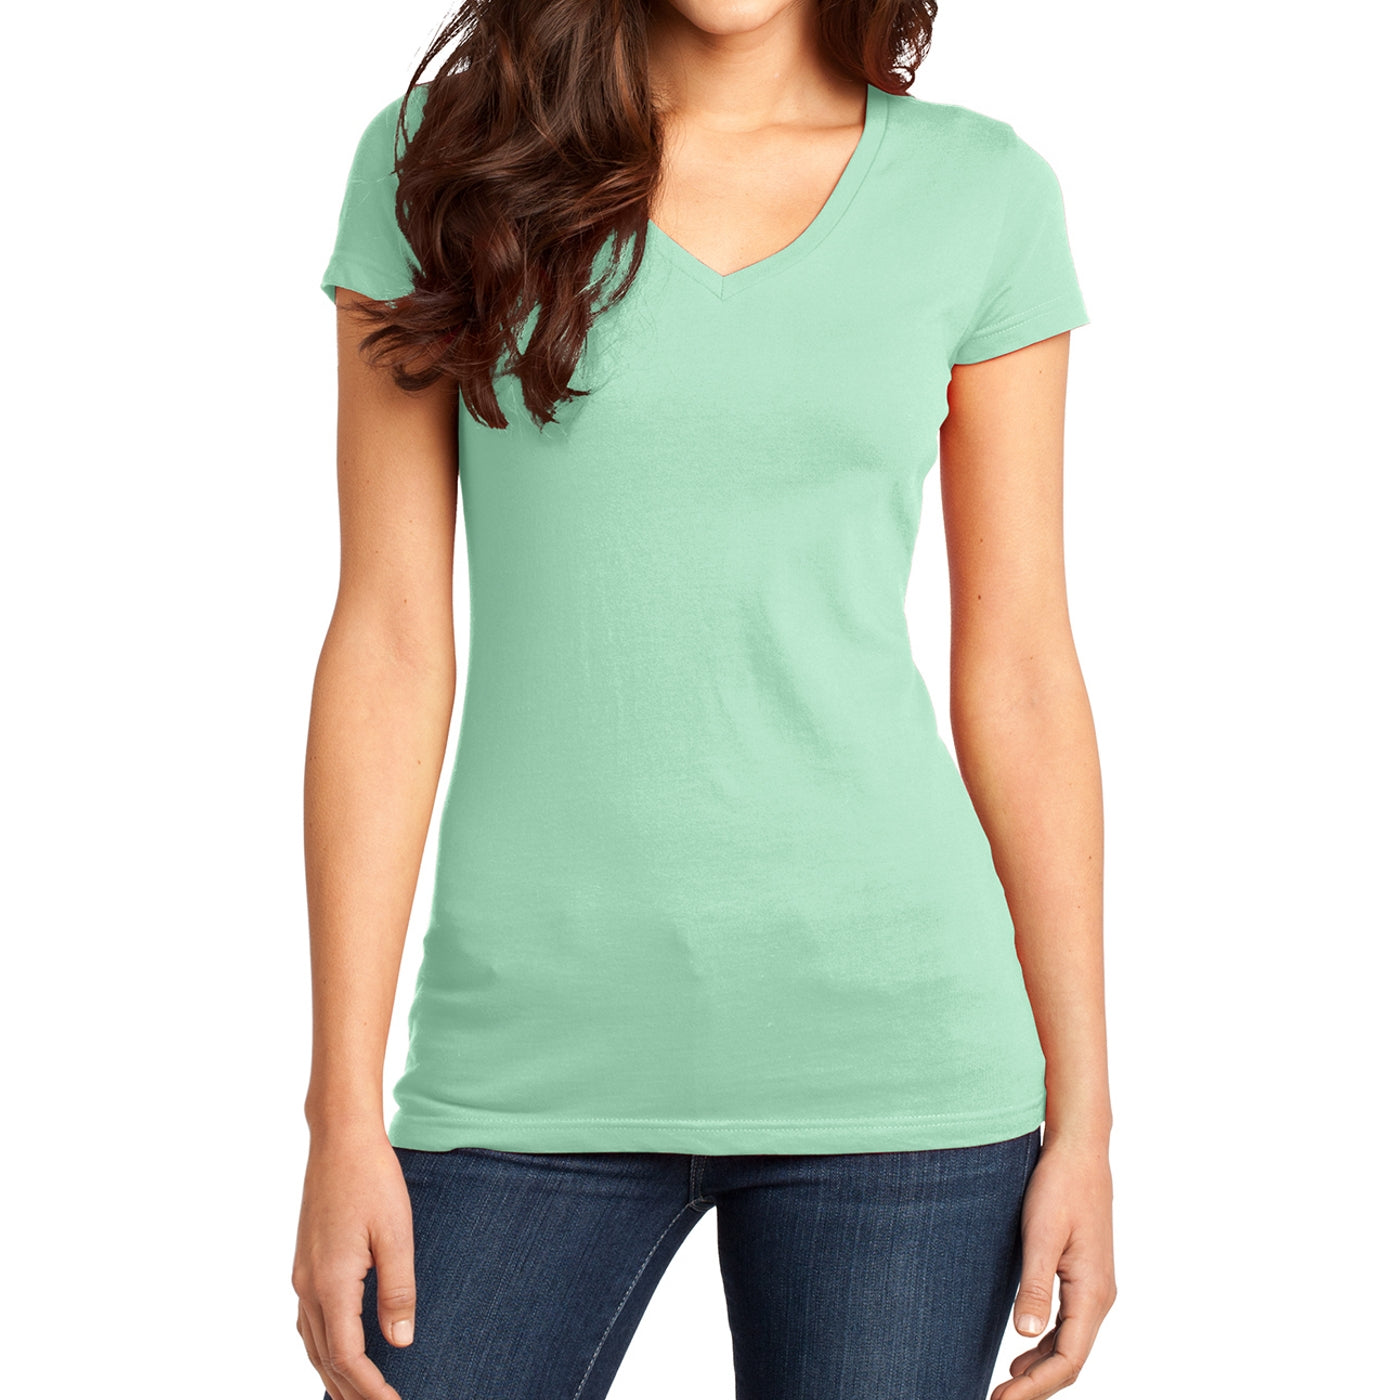 Women's Juniors Very Important Tee V-Neck - Mint